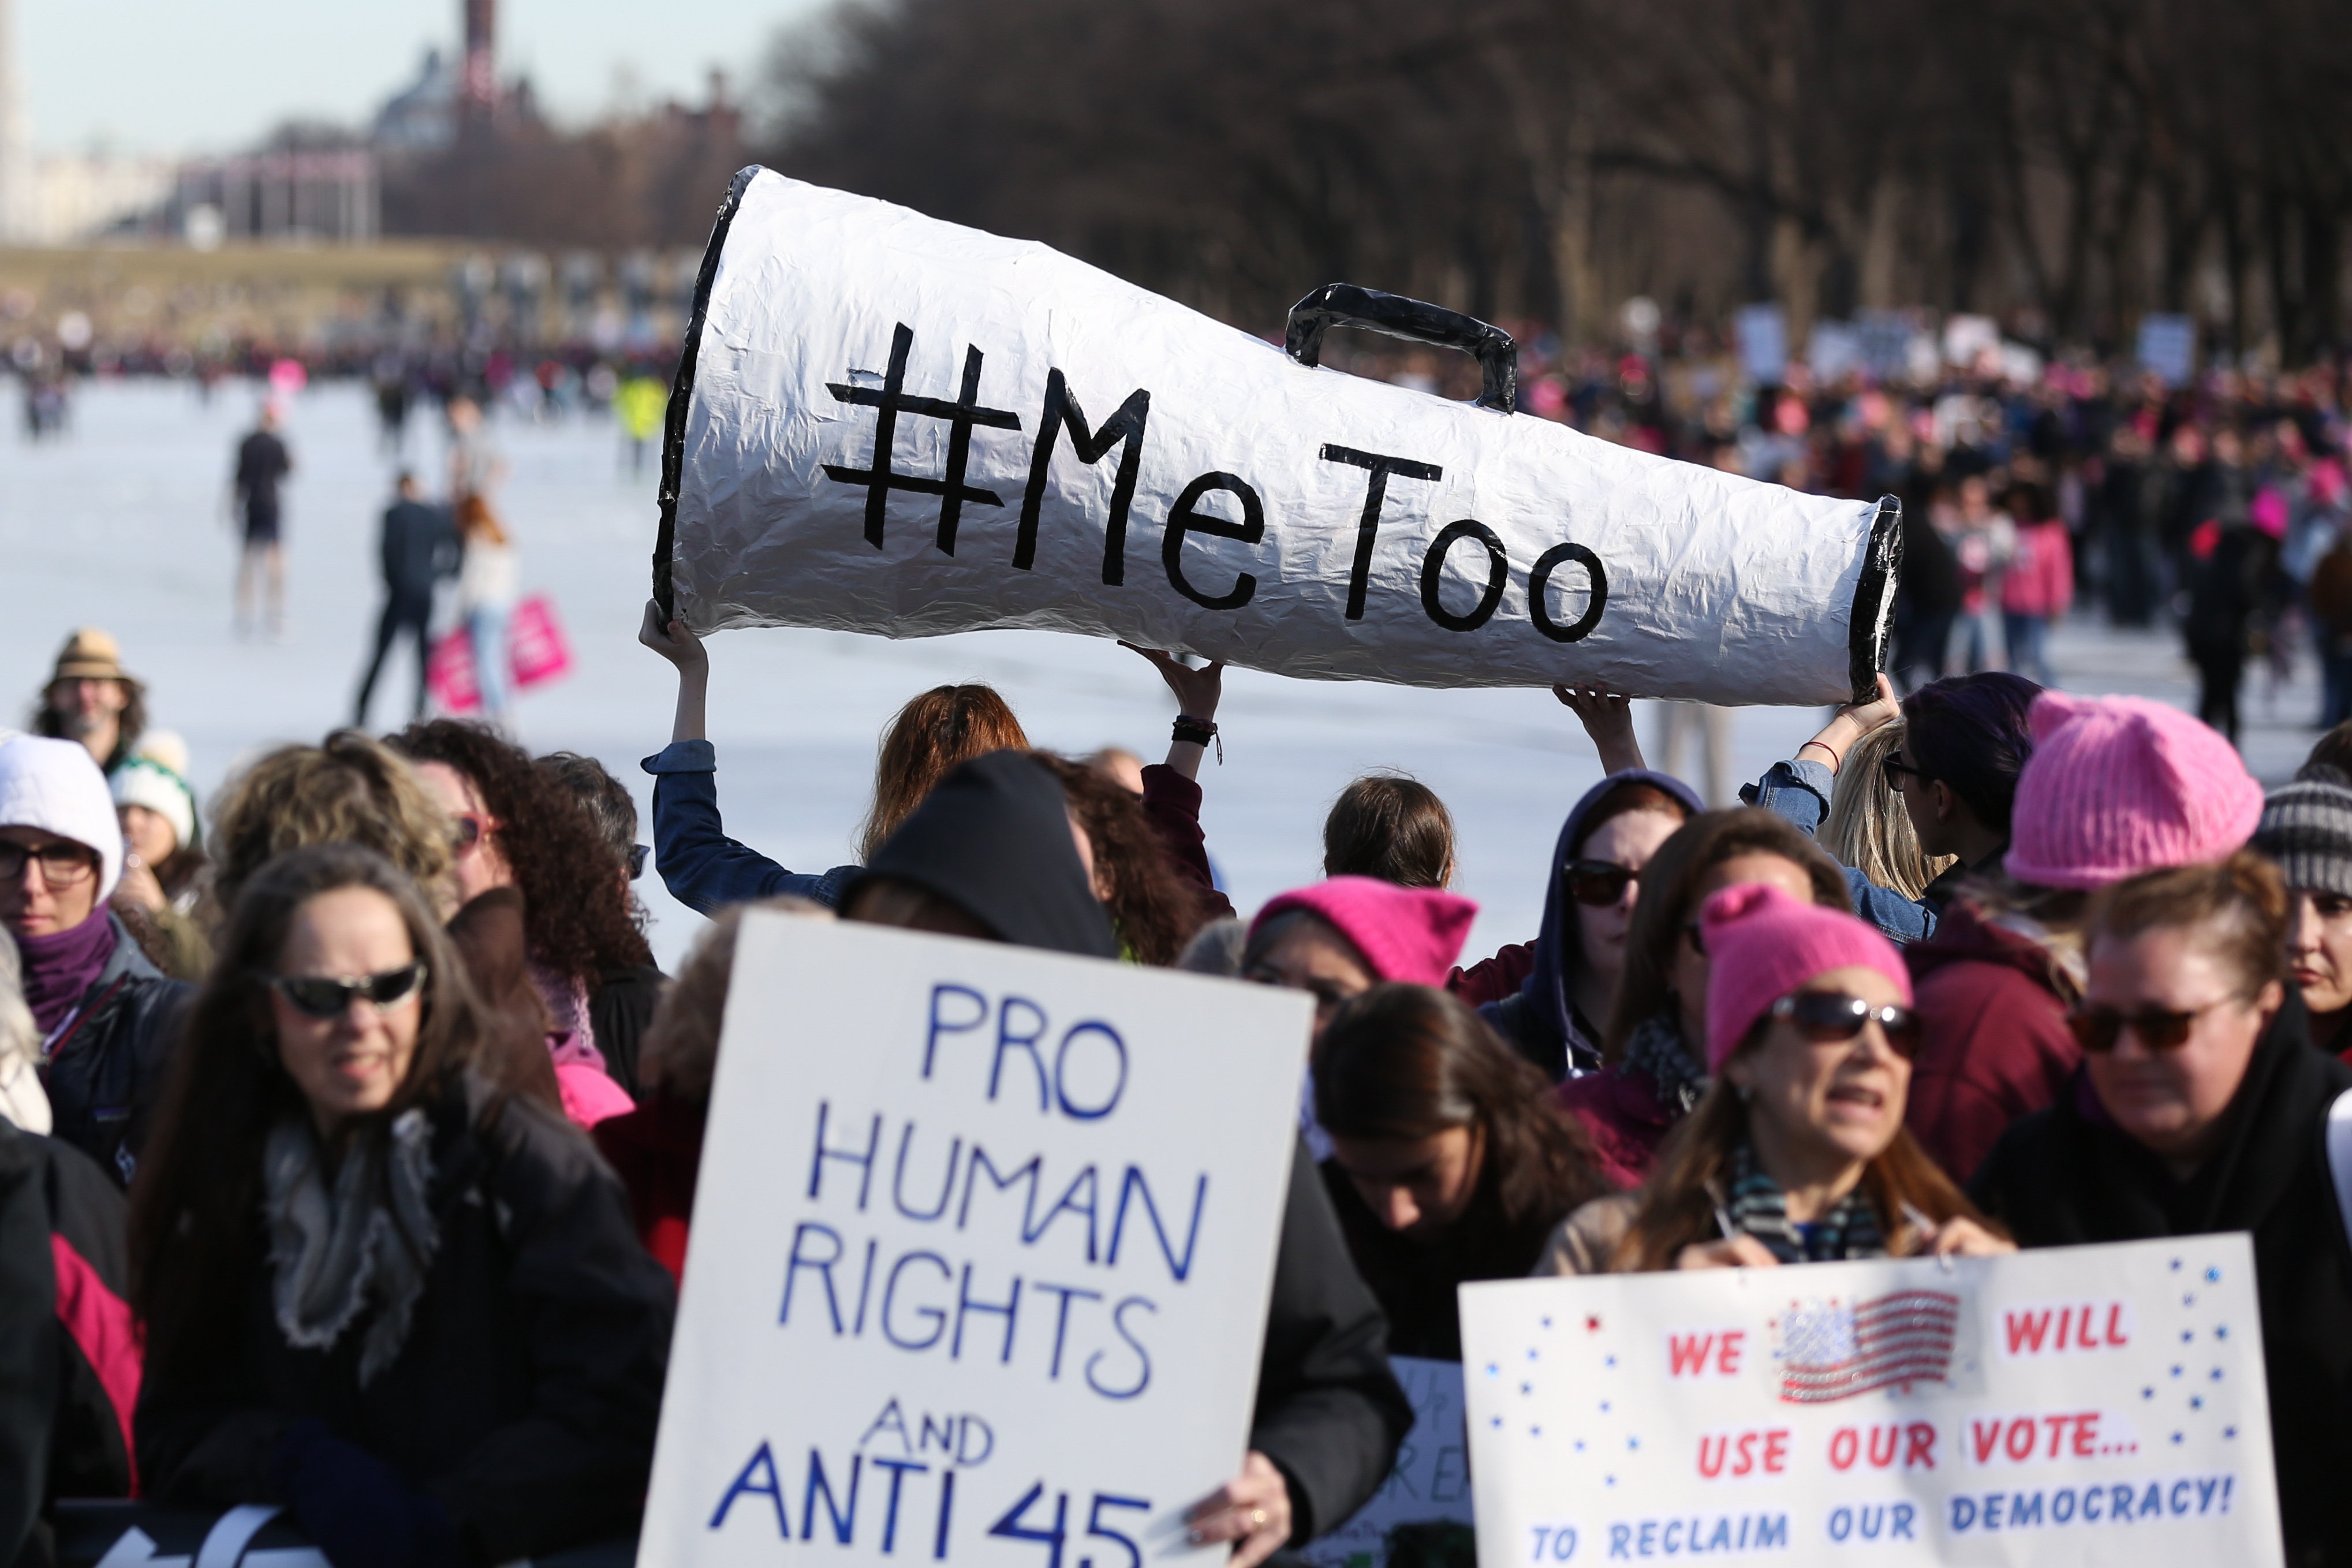 With the advent of the #MeToo movement, there was even more discussion of sexual assault and harassment at this year's march. (Amanda Andrade-Rhoades/DC Refined)